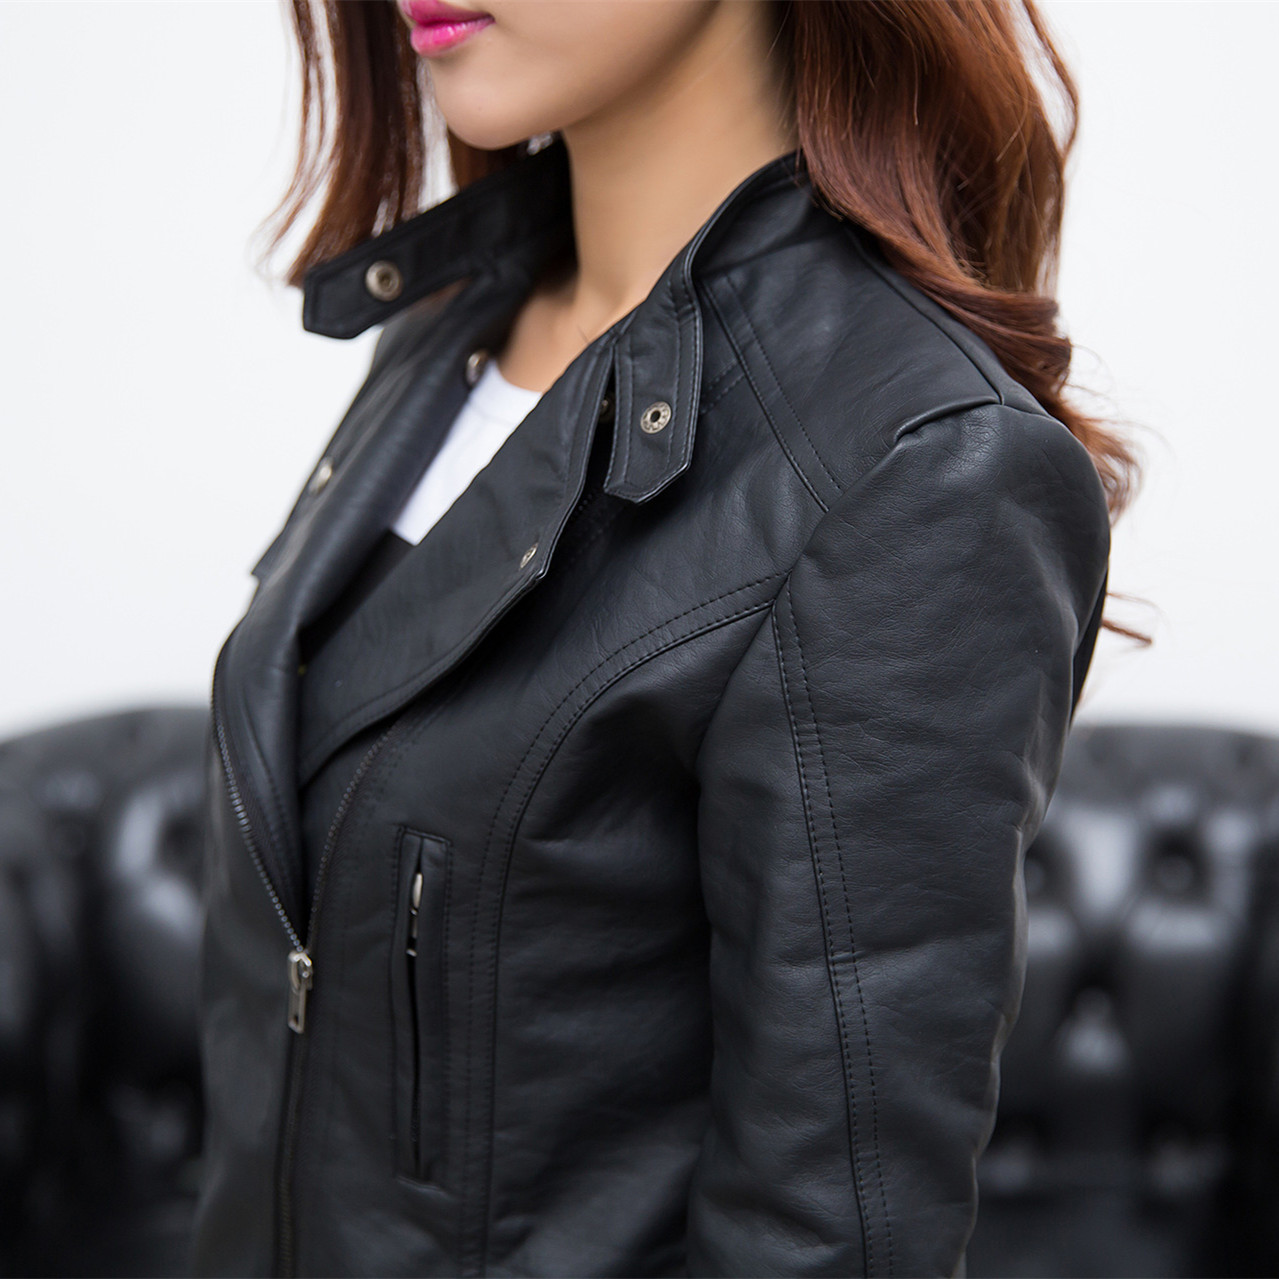 7b4233b6a08f Women Leather Jacket With Bulk Classic Black Girls Motorcycle Biker Jacket  2015 Fashion New Plus Size Free Shipping-in Leather   Suede from Women s  Clothing ...